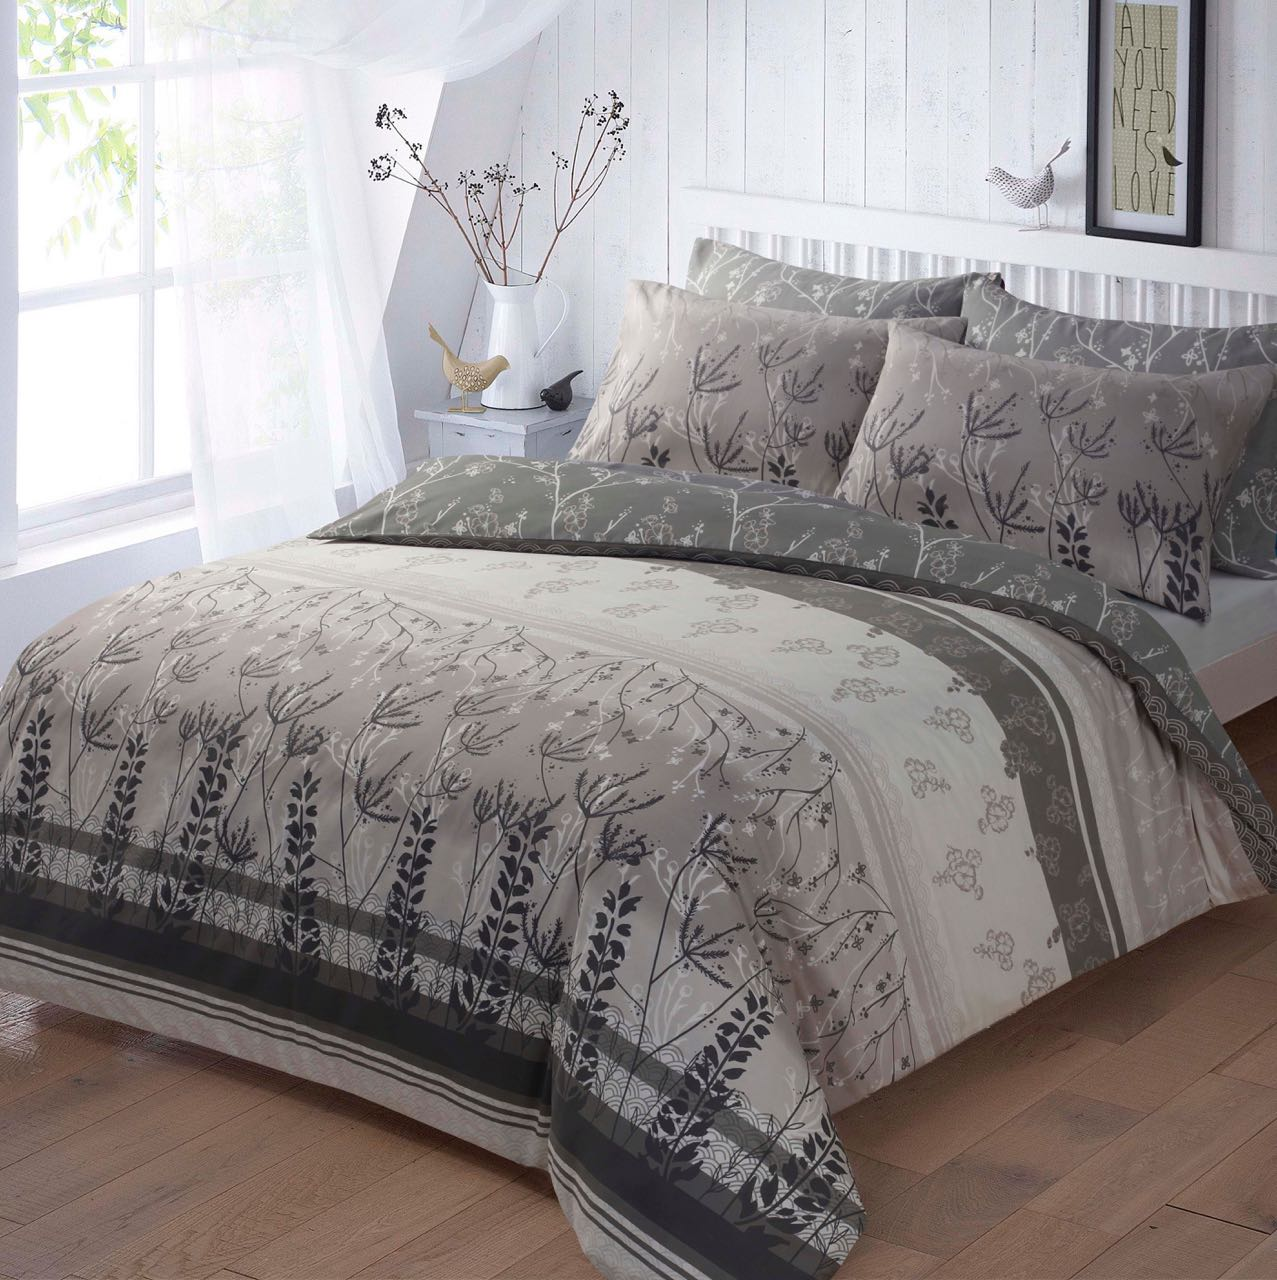 Garden Print Duvet Set - Single at Bargain Crazy, UK Catalogue